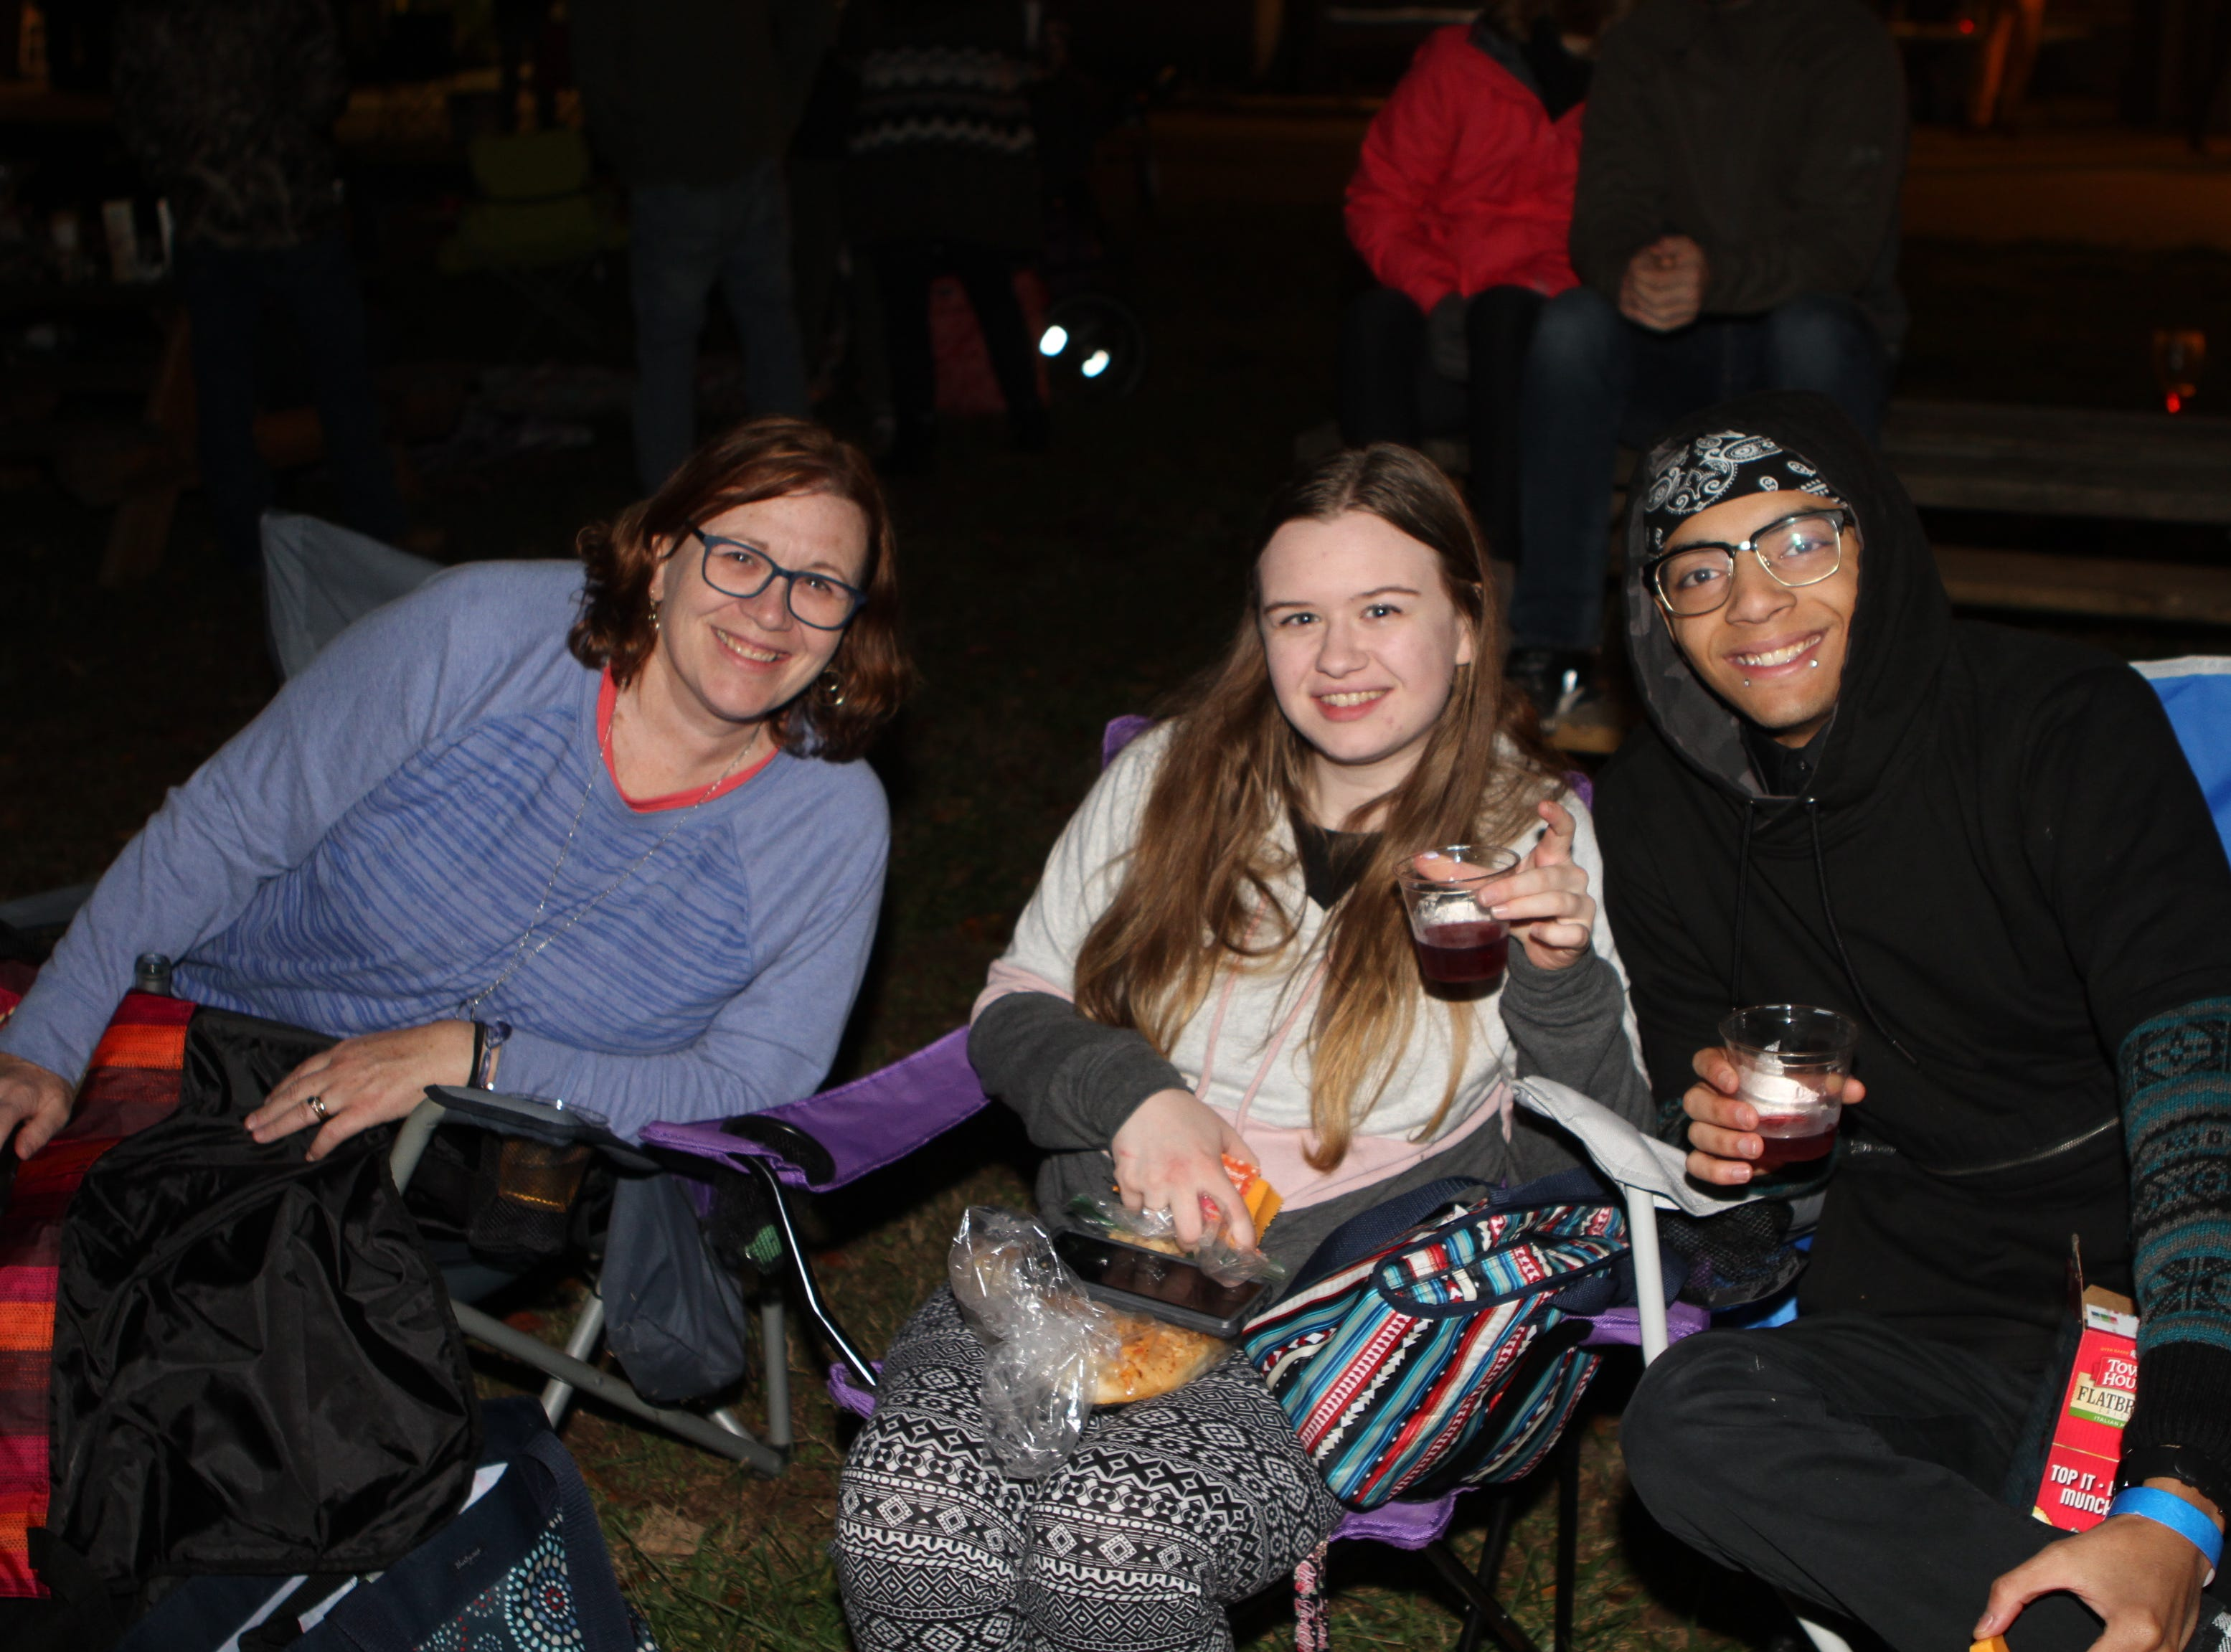 Hundreds came out, many in costume, to enjoy Beachaven's final Jazz on the Lawn of the season, Saturday, Oct. 27, 2018.